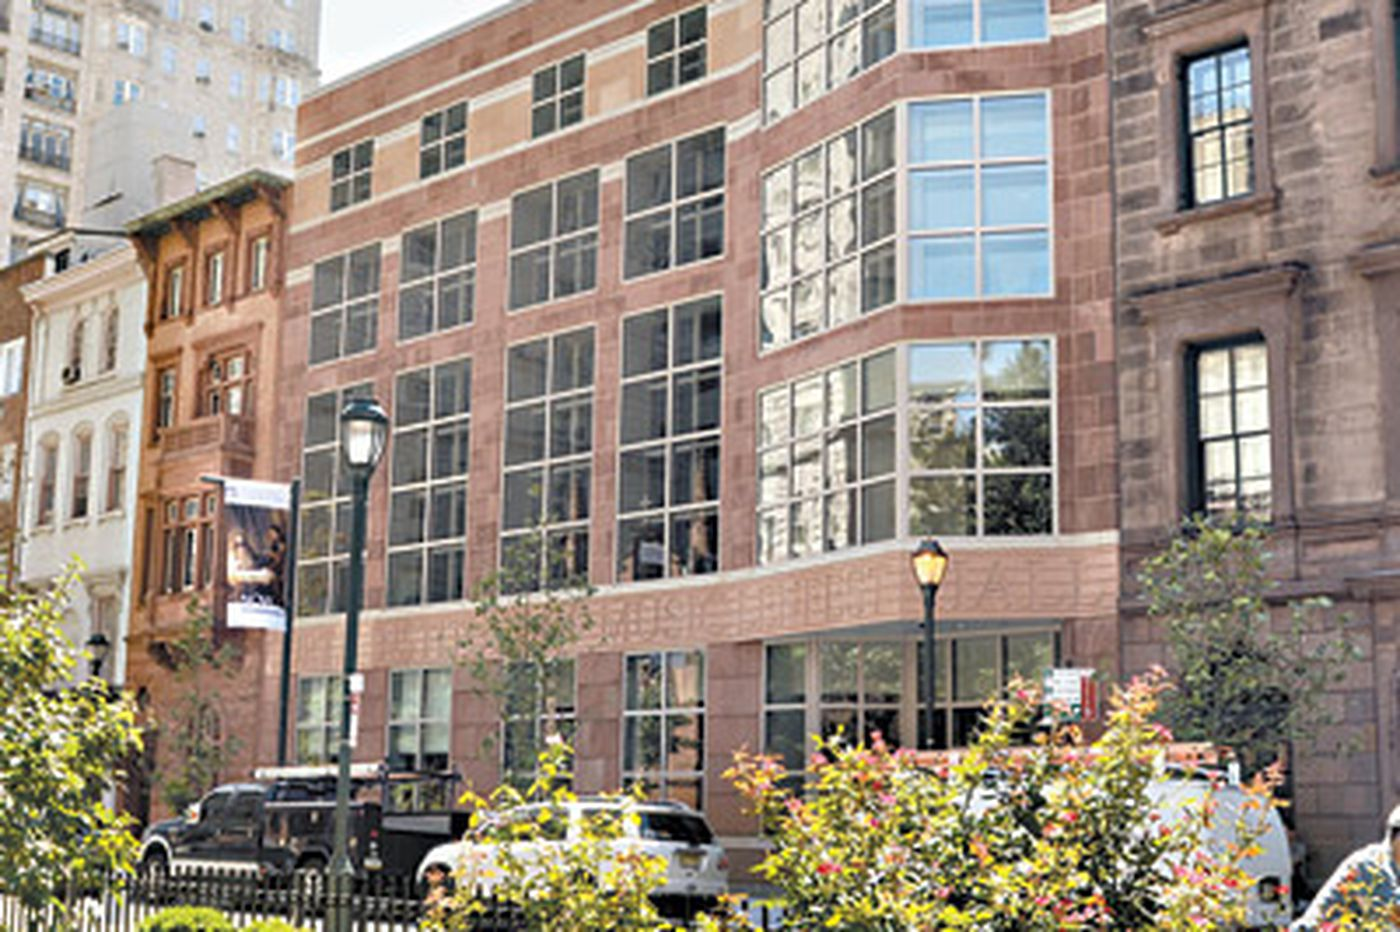 Changing Skyline: Design of Curtis Institute's Lenfest Hall has strong points but lacks spark